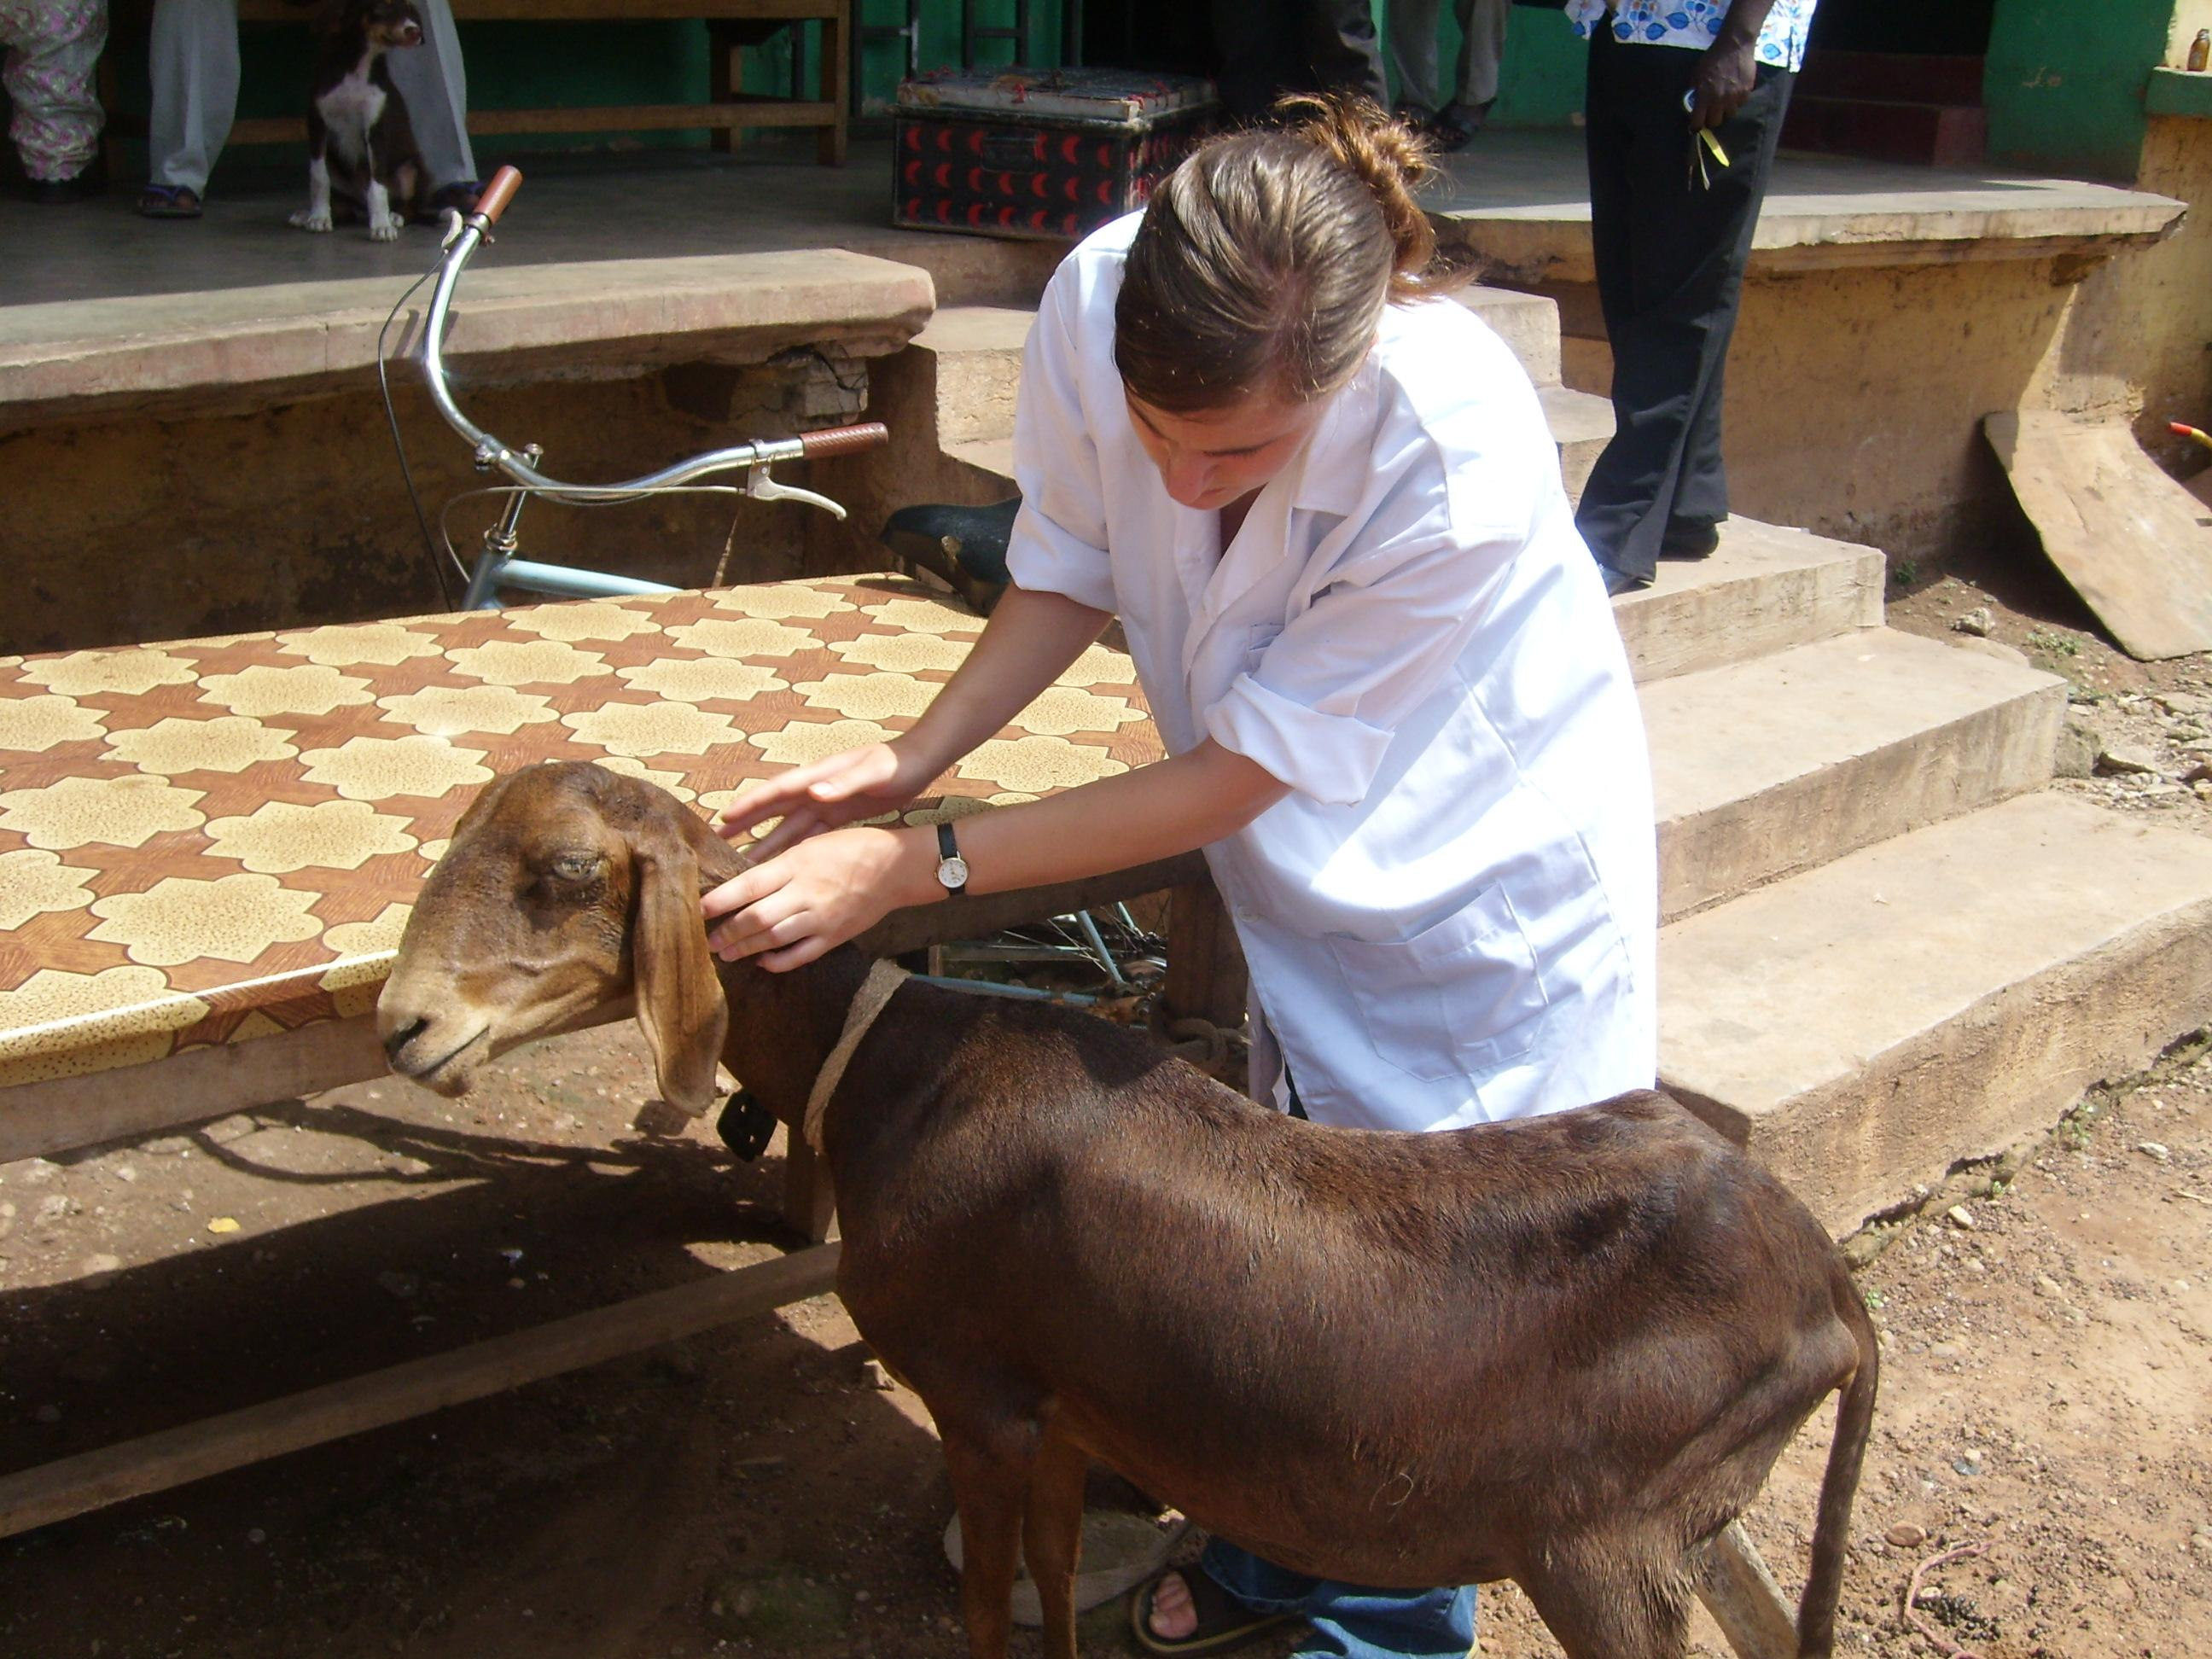 An intern doing a Veterinary Medicine placement in Ghana helps treat a goat in a rural village.